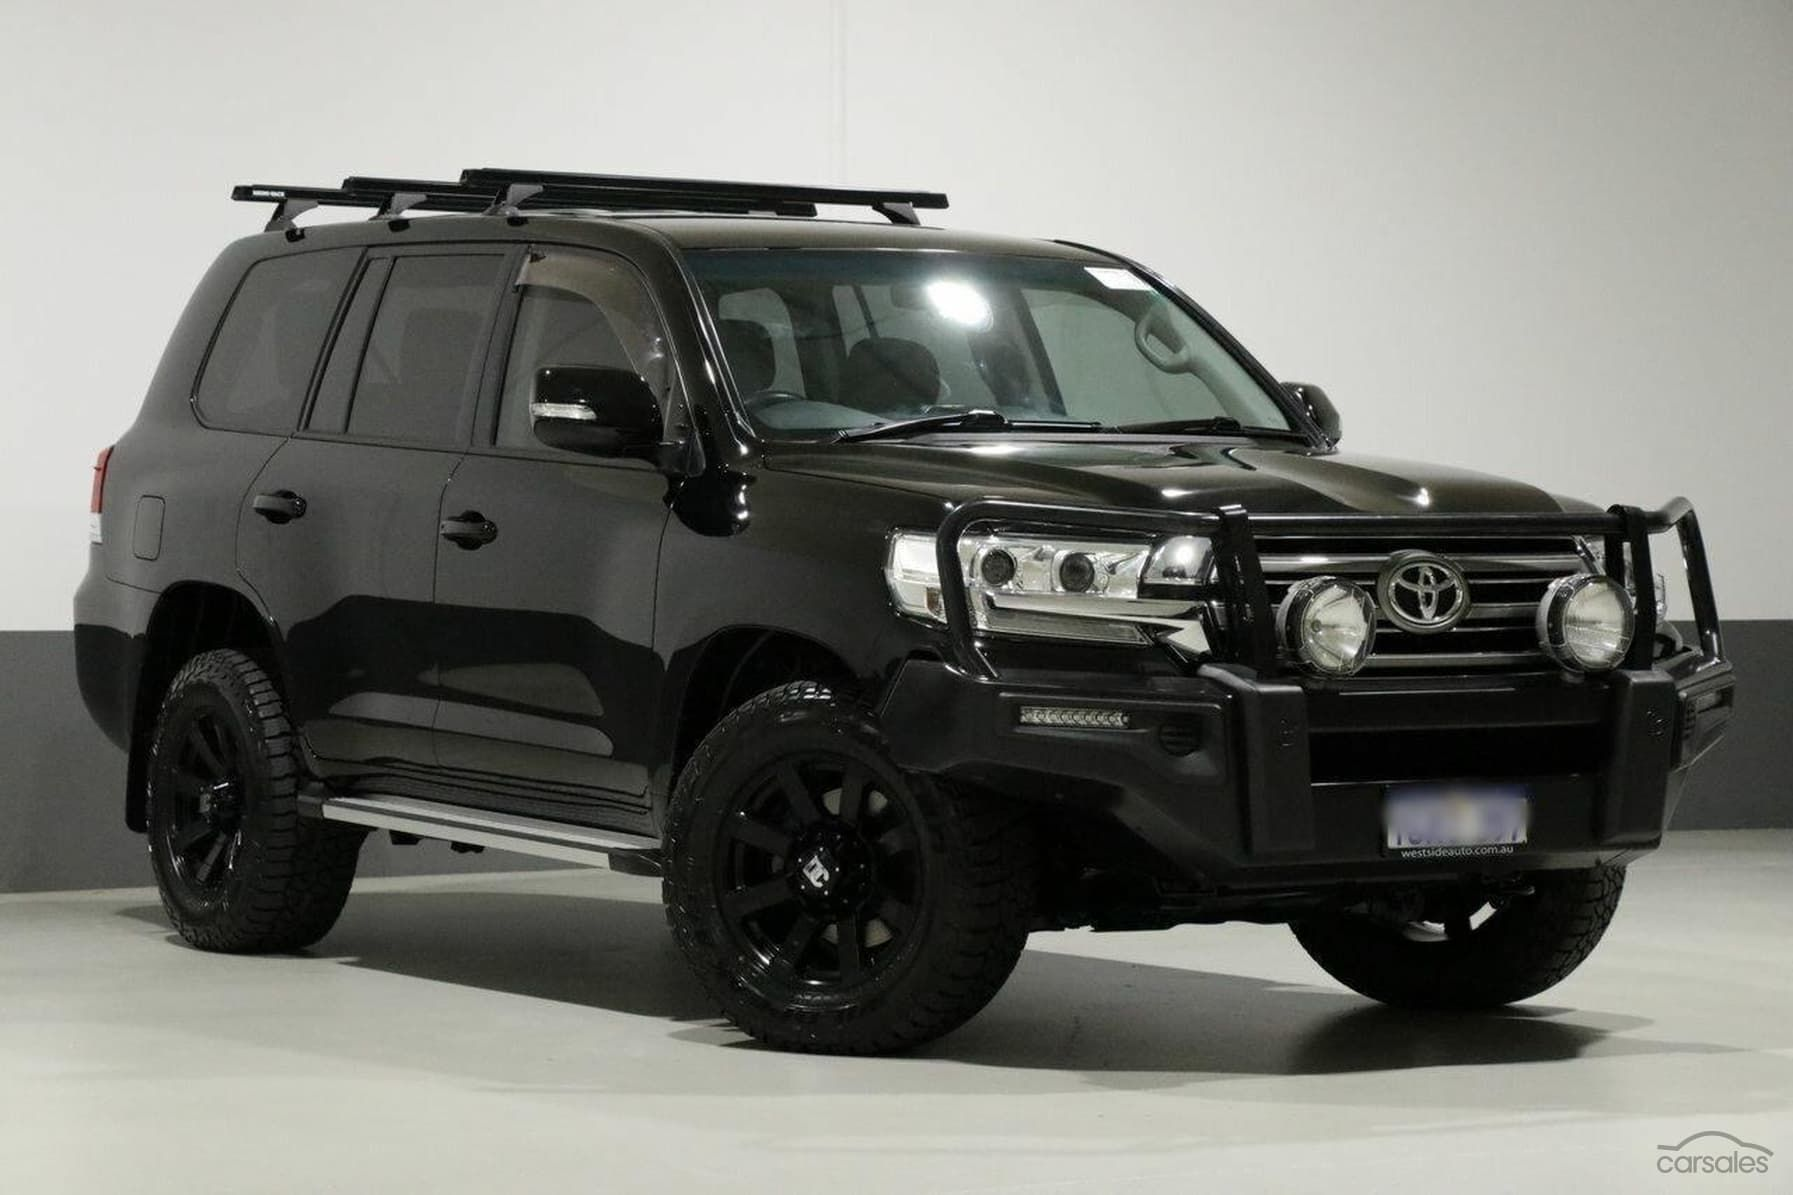 2015 Toyota Landcruiser Gxl Auto 4x4 Oag Ad 18149153 Carsales Com Au In 2020 New And Used Cars Land Cruiser Land Cruiser 200